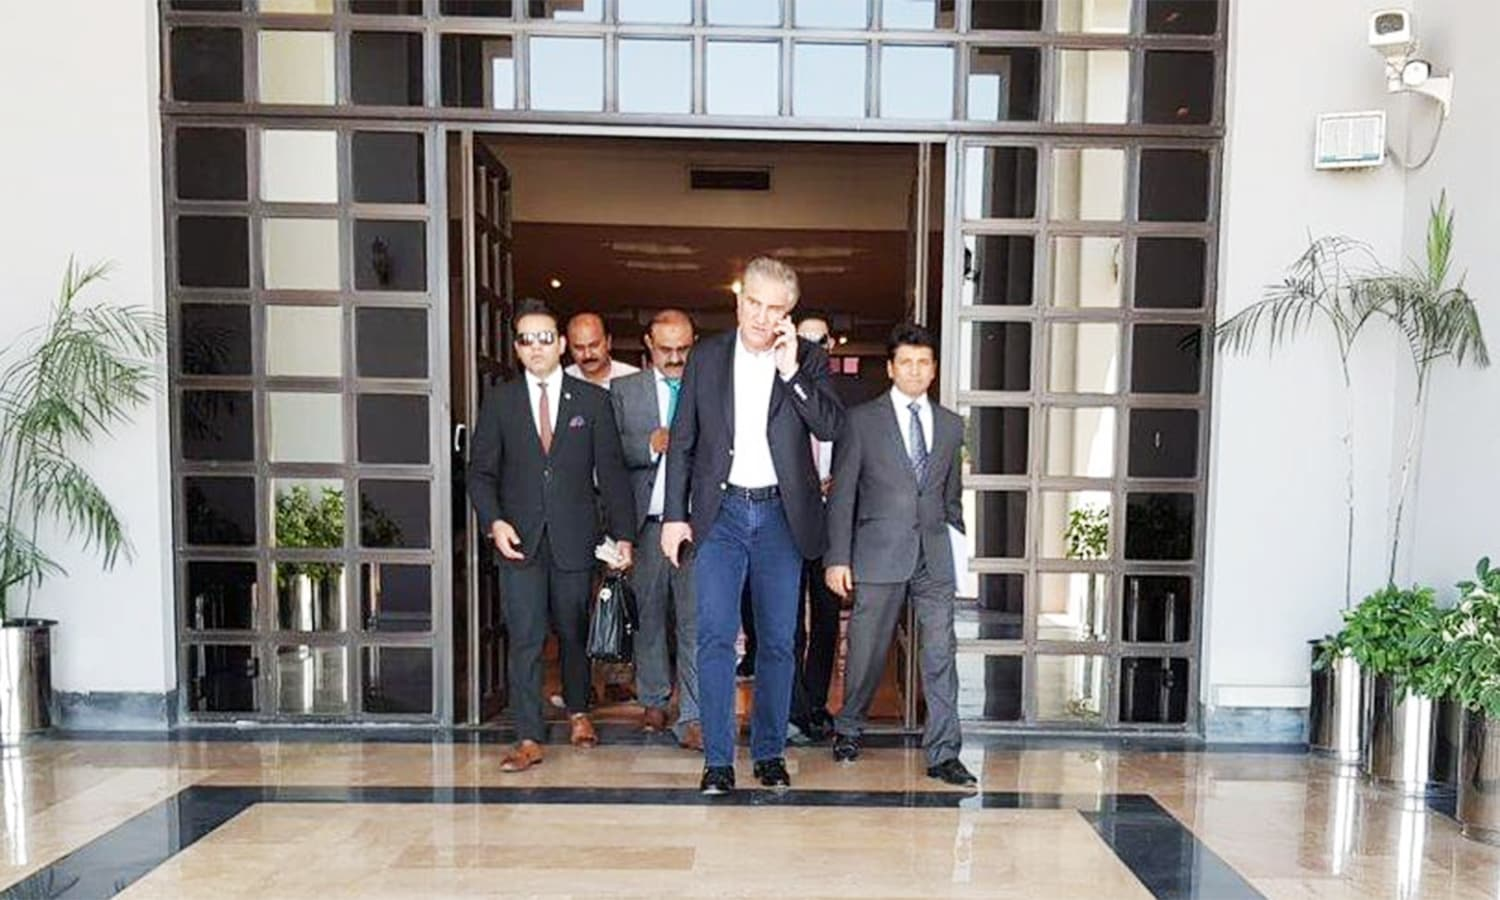 Foreign Minister Shah Mahmood Qureshi is slated to meet his Chinese and Russian counterparts in Bishkek. ─ Photo courtesy GoP Twitter